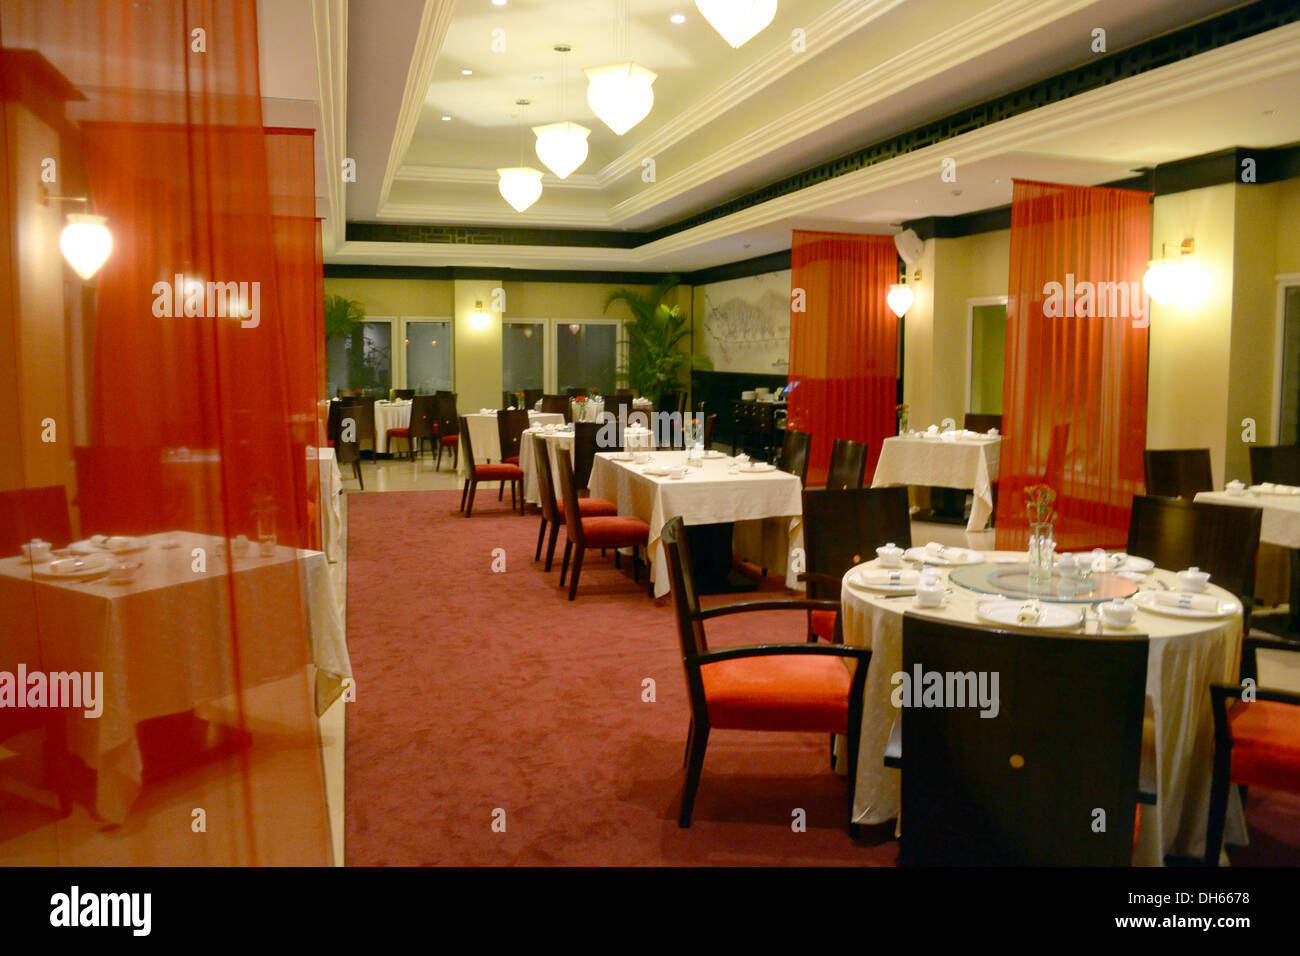 the decor of a chinese restaurant stock photo, royalty free image